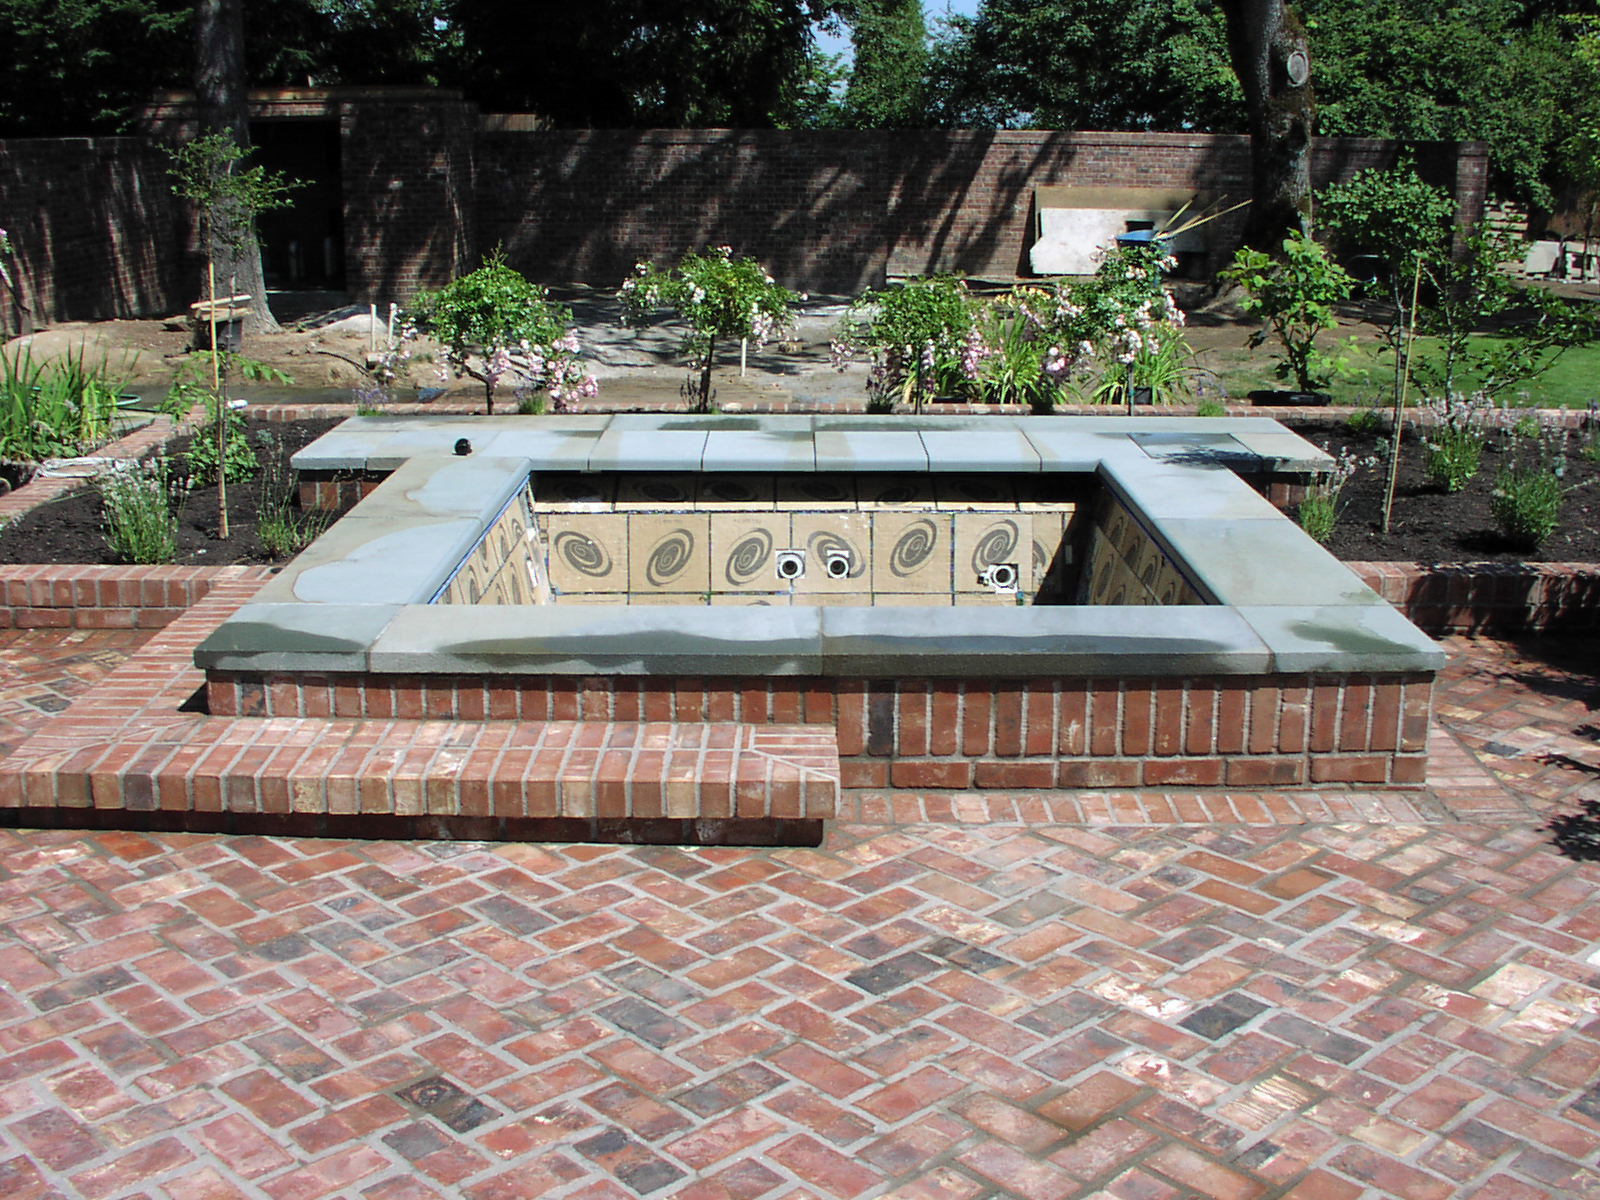 Jacuzzi Pool Top Caps Brick Patio With Jacuzzi On Top